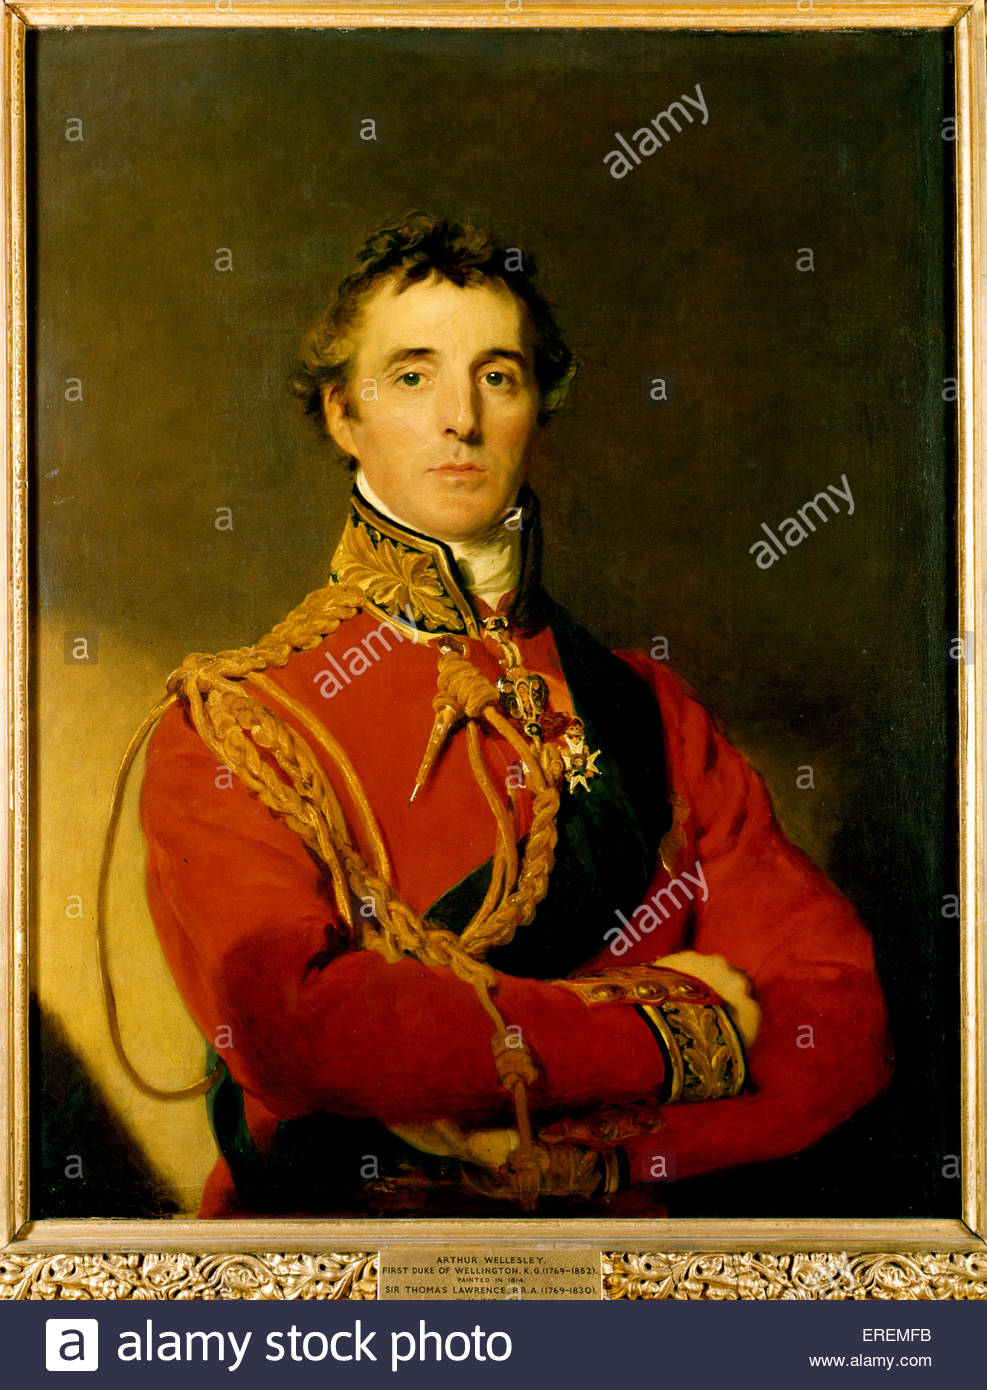 1st Duke of Wellington by Sir Thomas Lawrence, 1814. DW: Field marshal Arthur Wellesey, Anglo- Irish soldier and - Stock Image